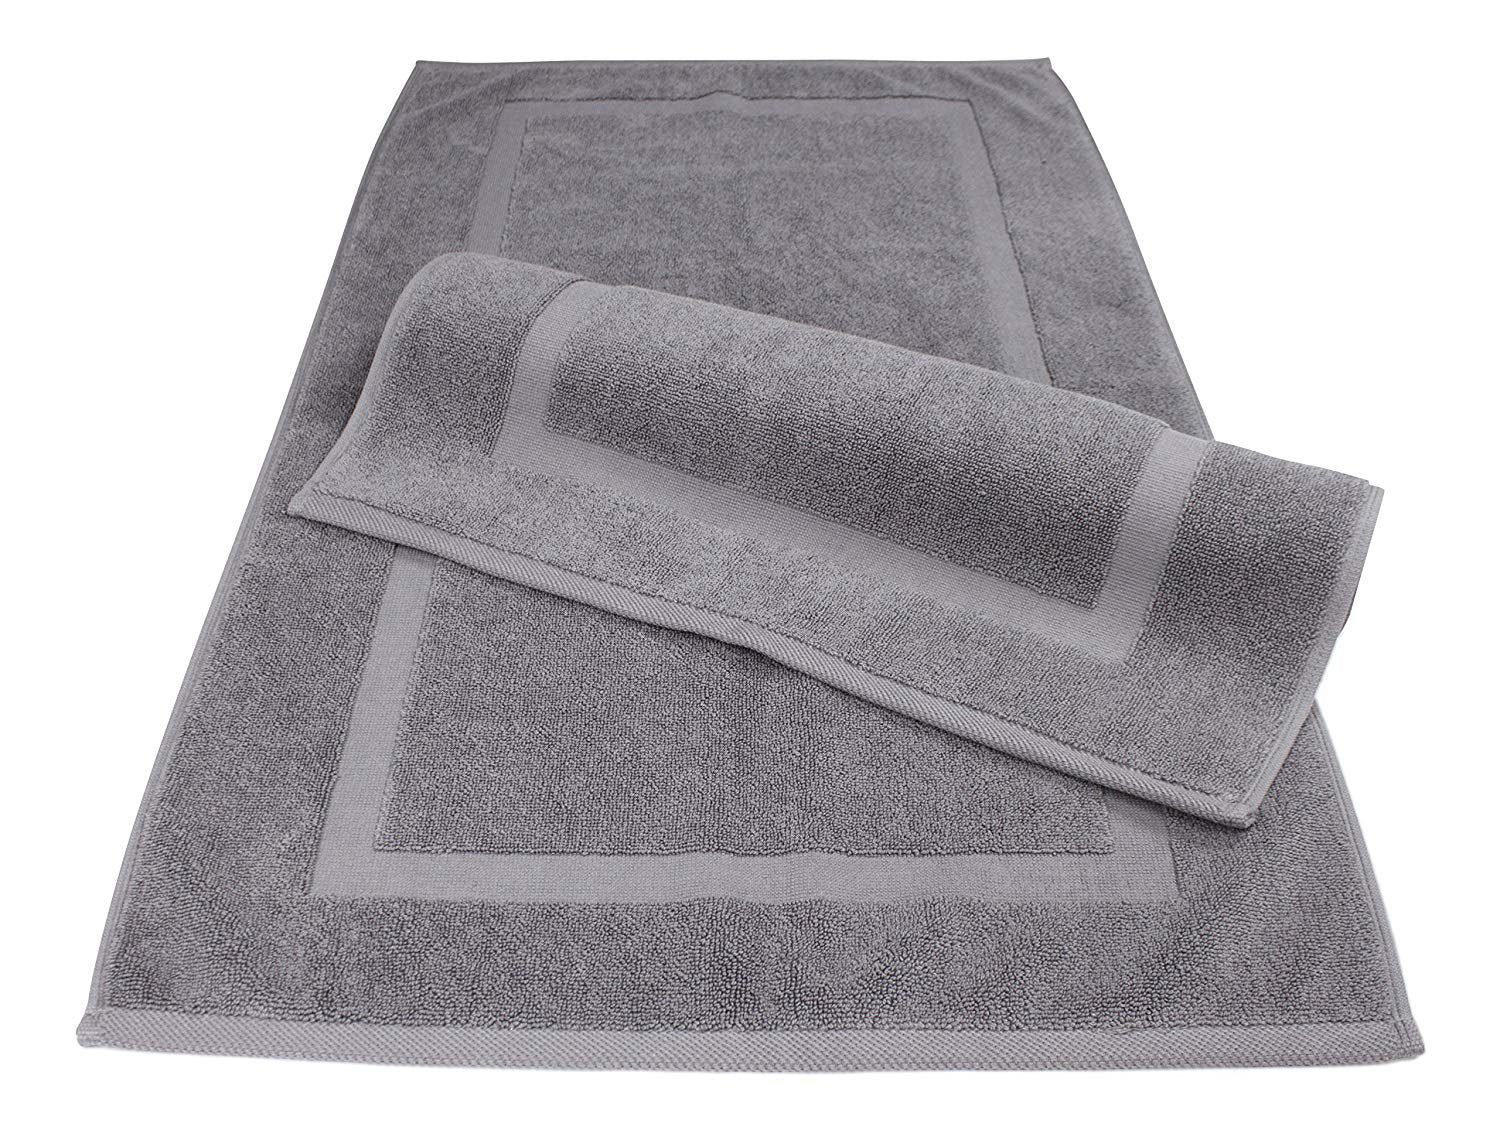 "SALBAKOS Luxury Hotel and Spa 100% Turkish Cotton Banded Panel Bath Mat Set 900gsm! 20""x34"" (Gray, 2 Pack)"